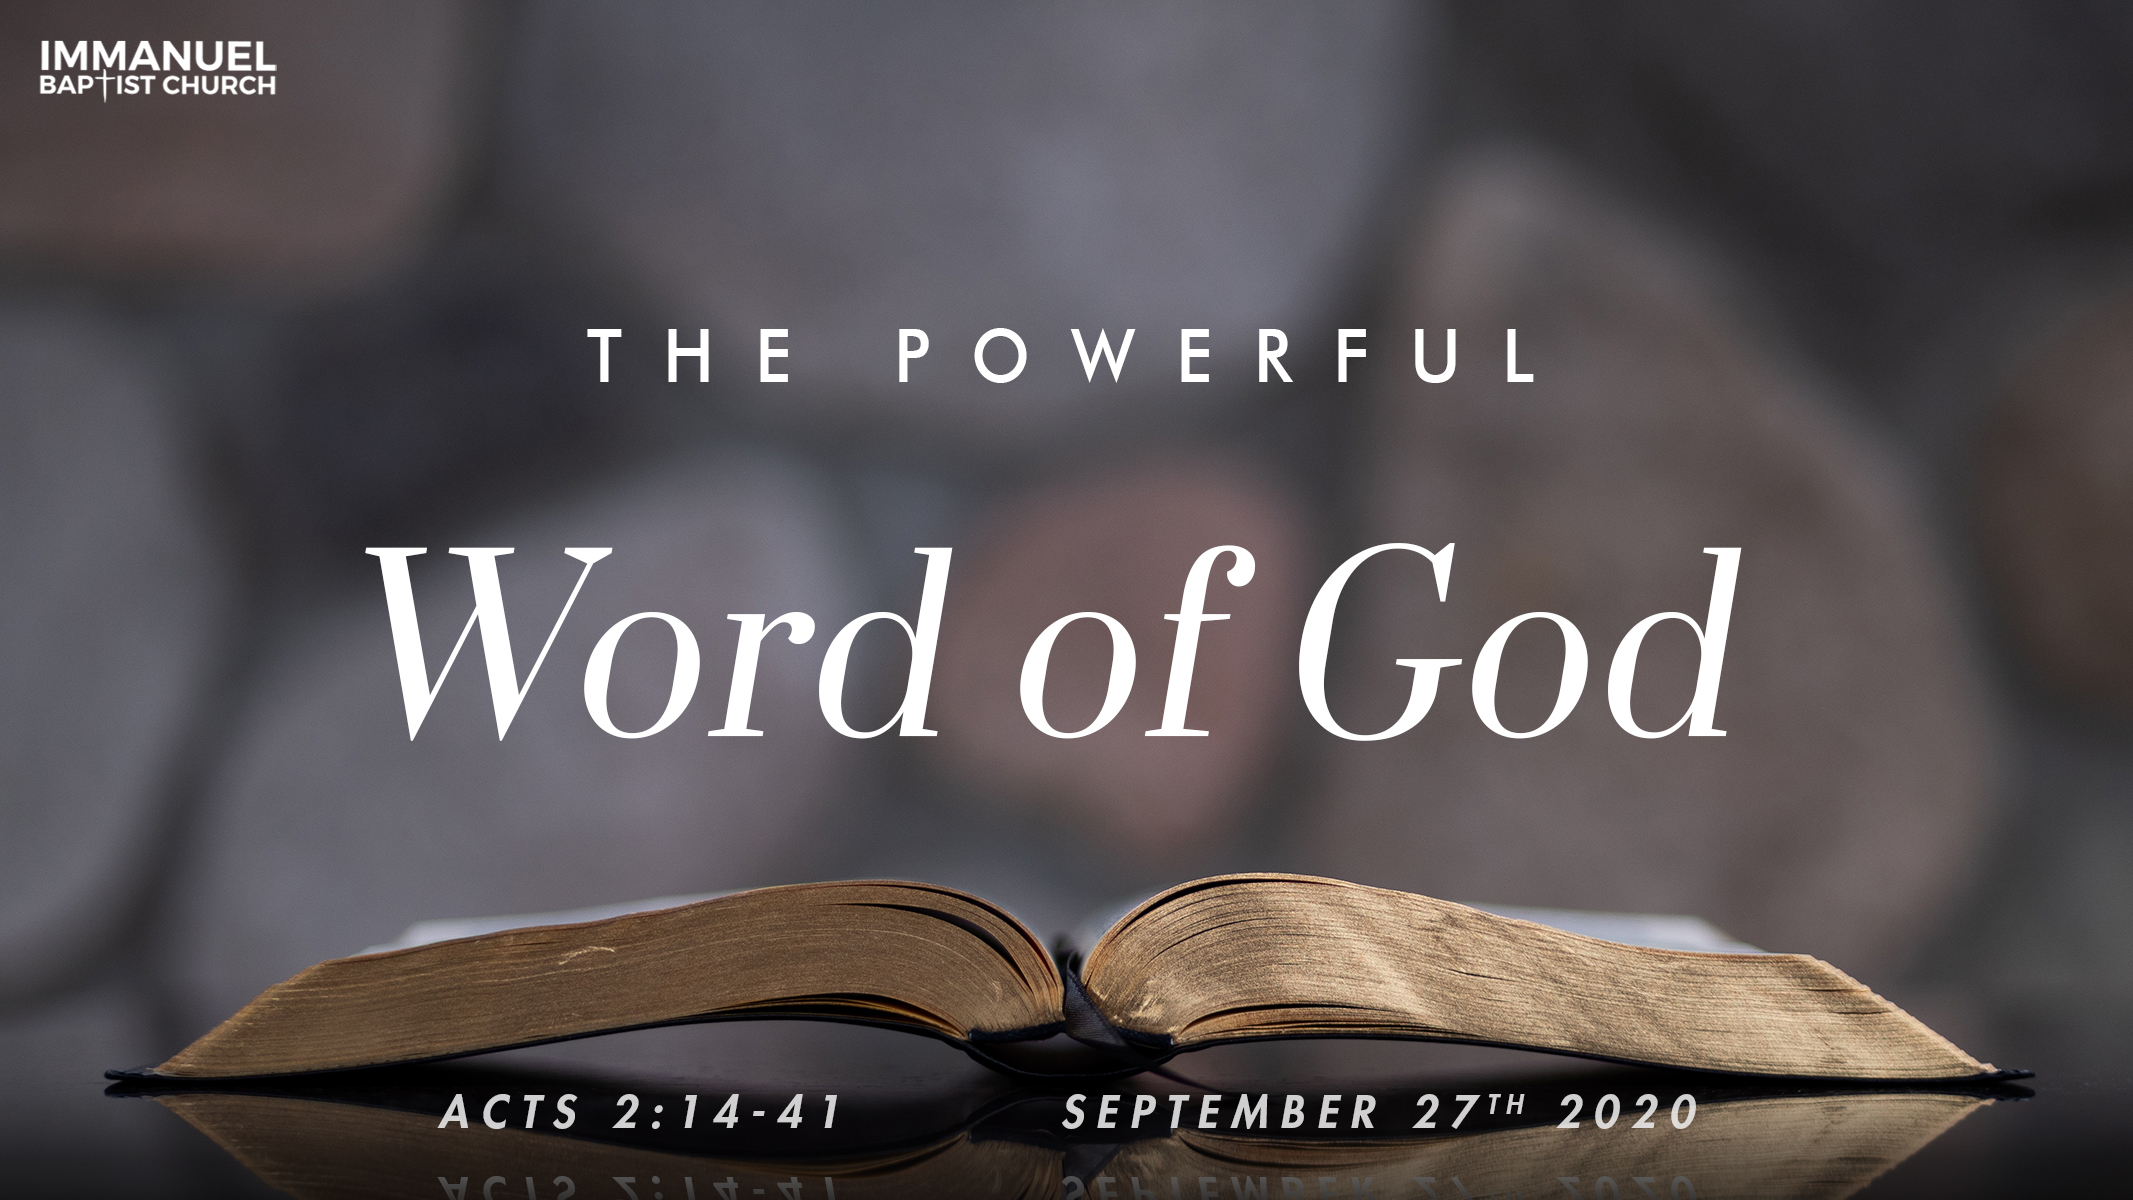 The Powerful Word of God